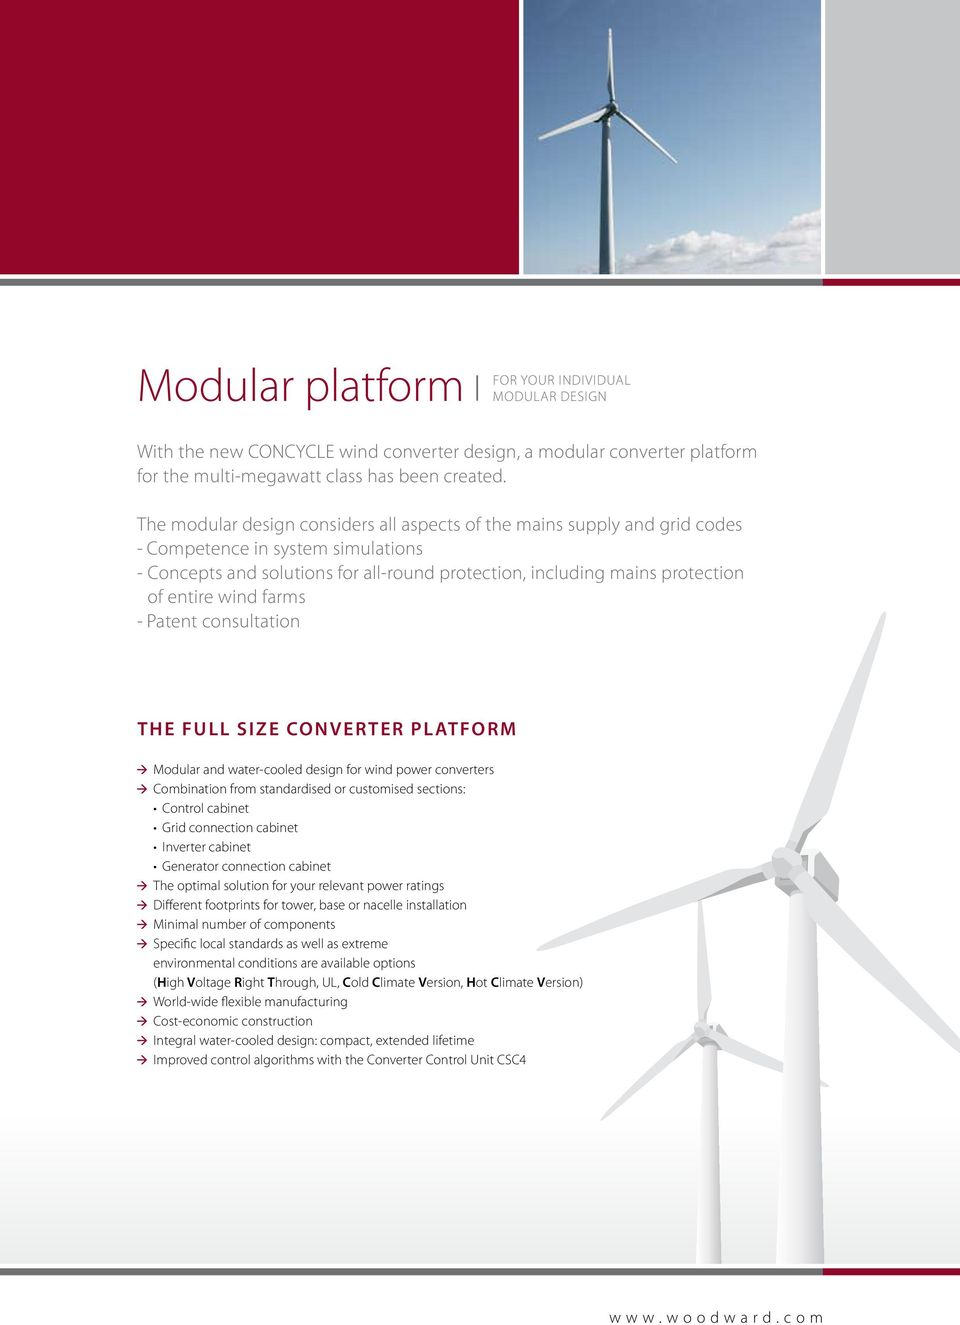 wind farms - Patent consultation The full size converter Platform Modular and water-cooled design for wind power converters combination from standardised or customised sections: Control cabinet Grid